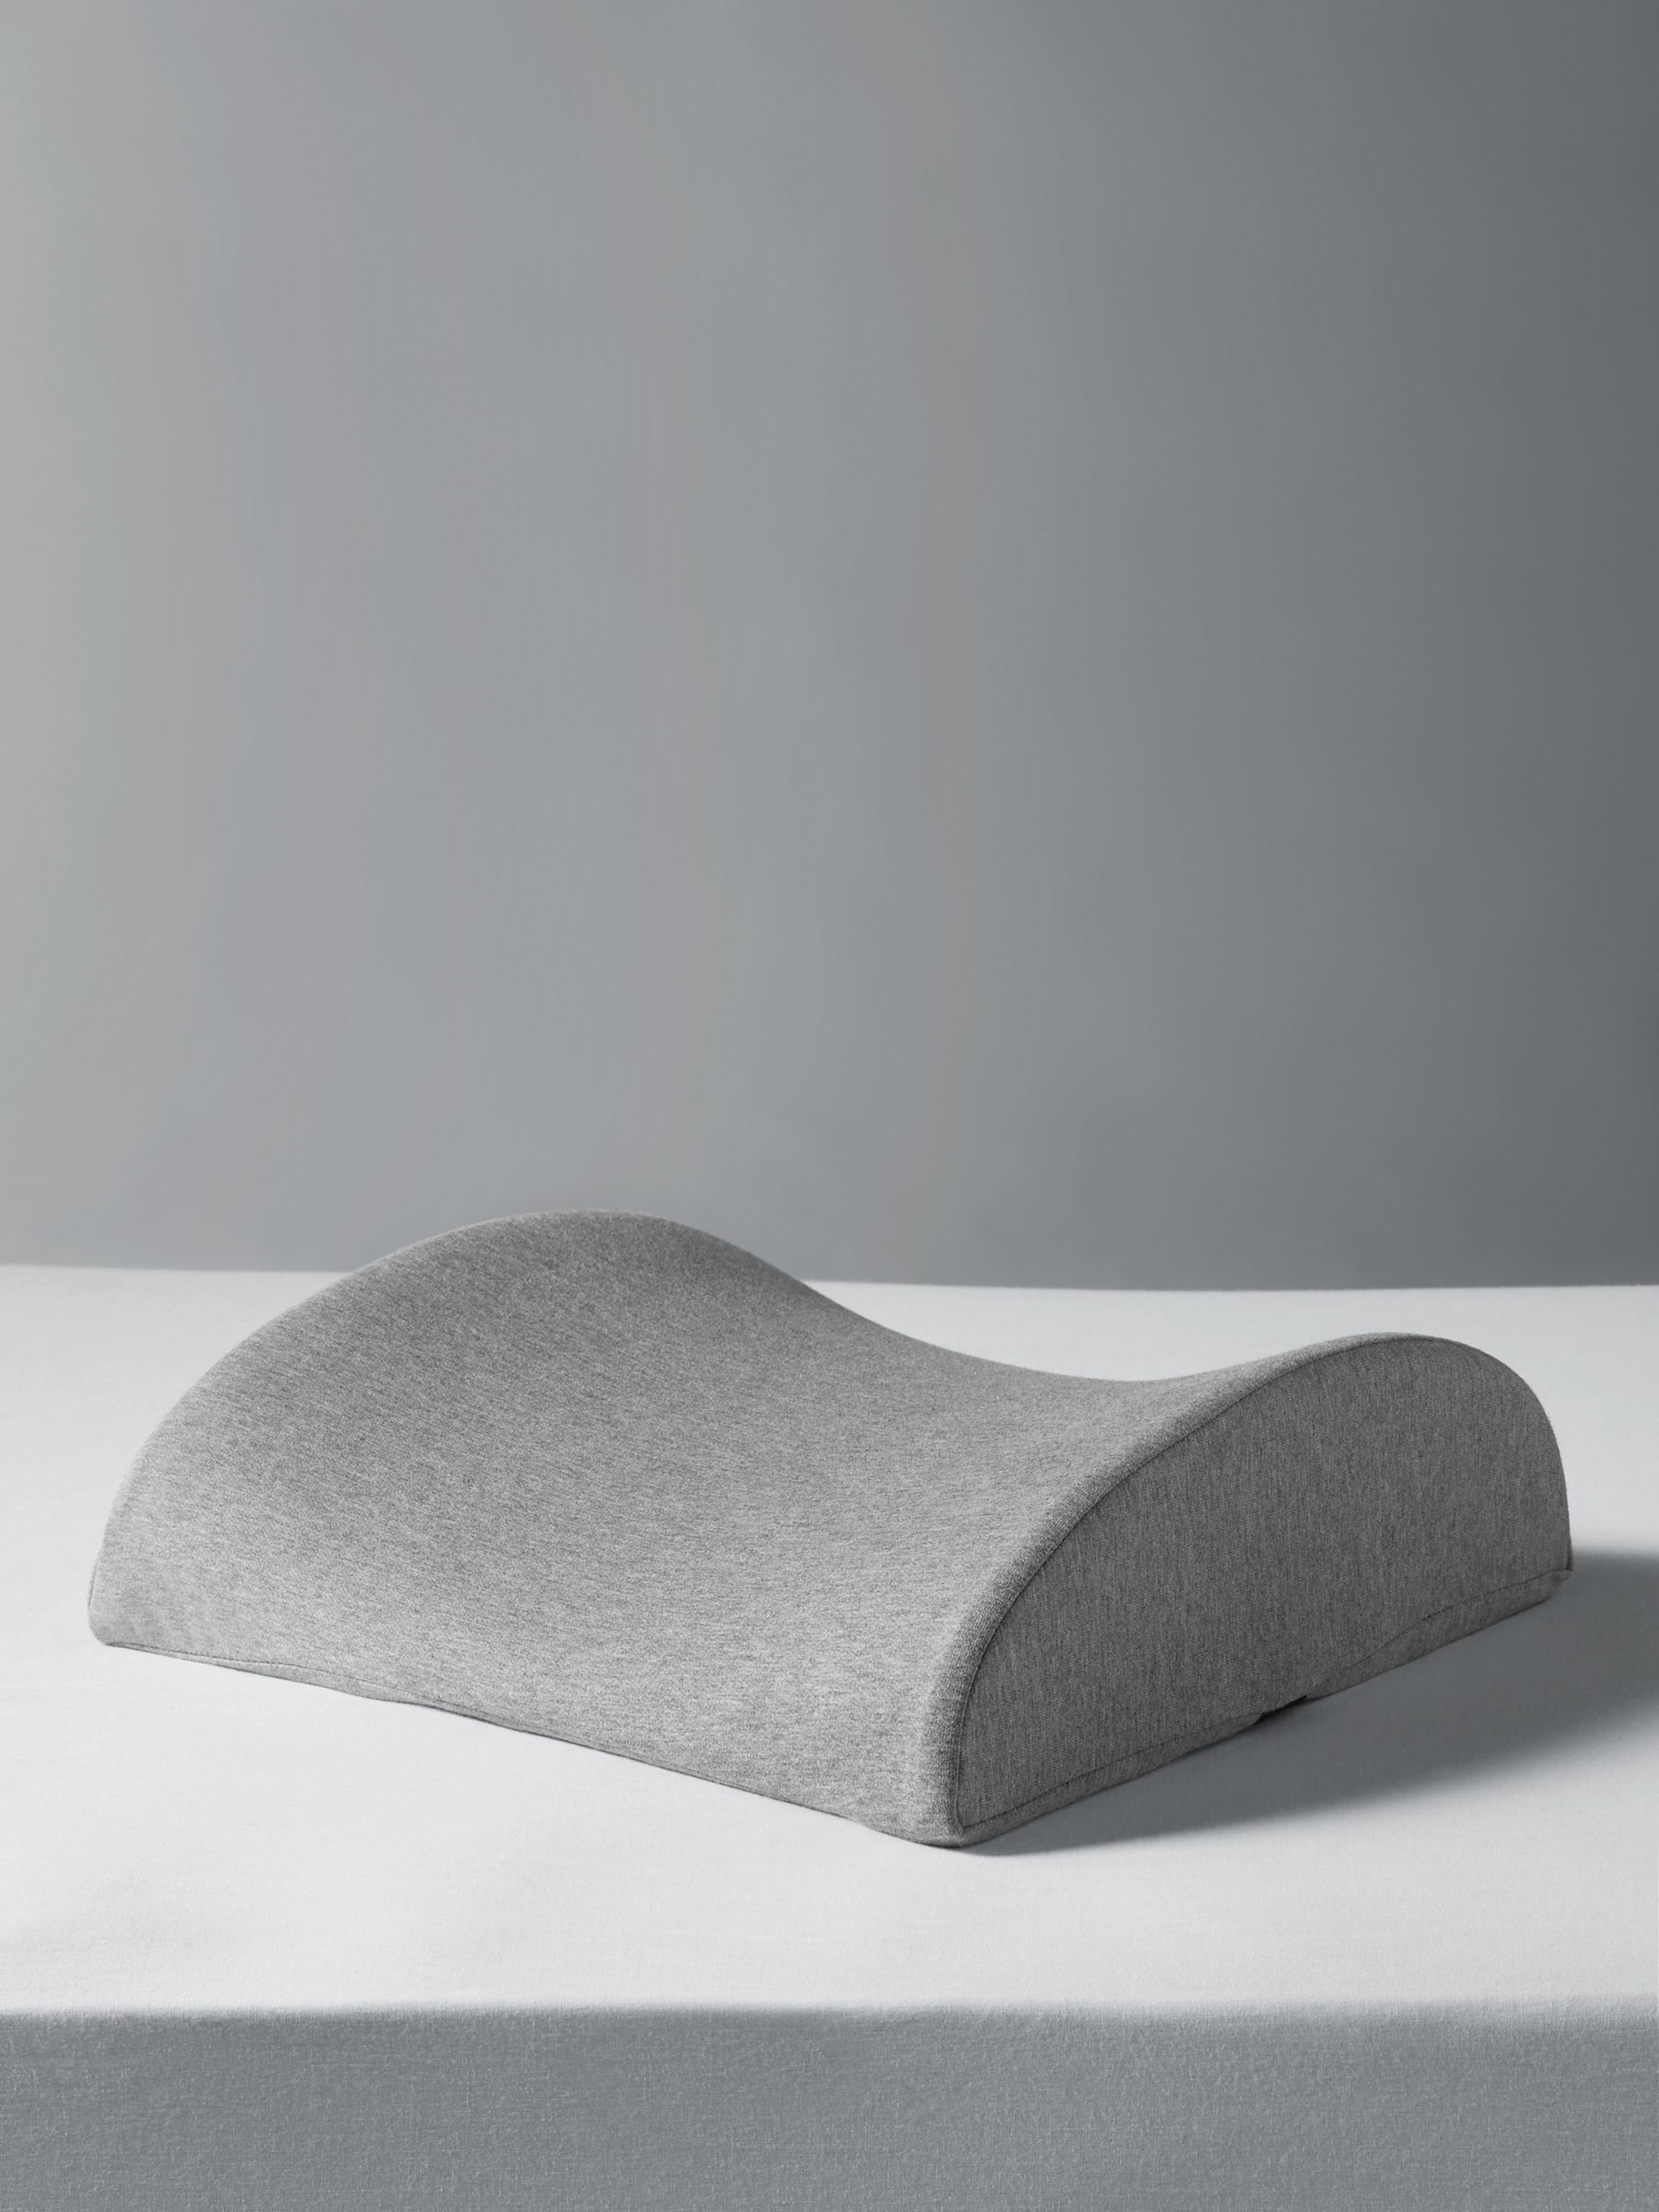 John Lewis & Partners Specialist Synthetic Lumbar Support Pillow